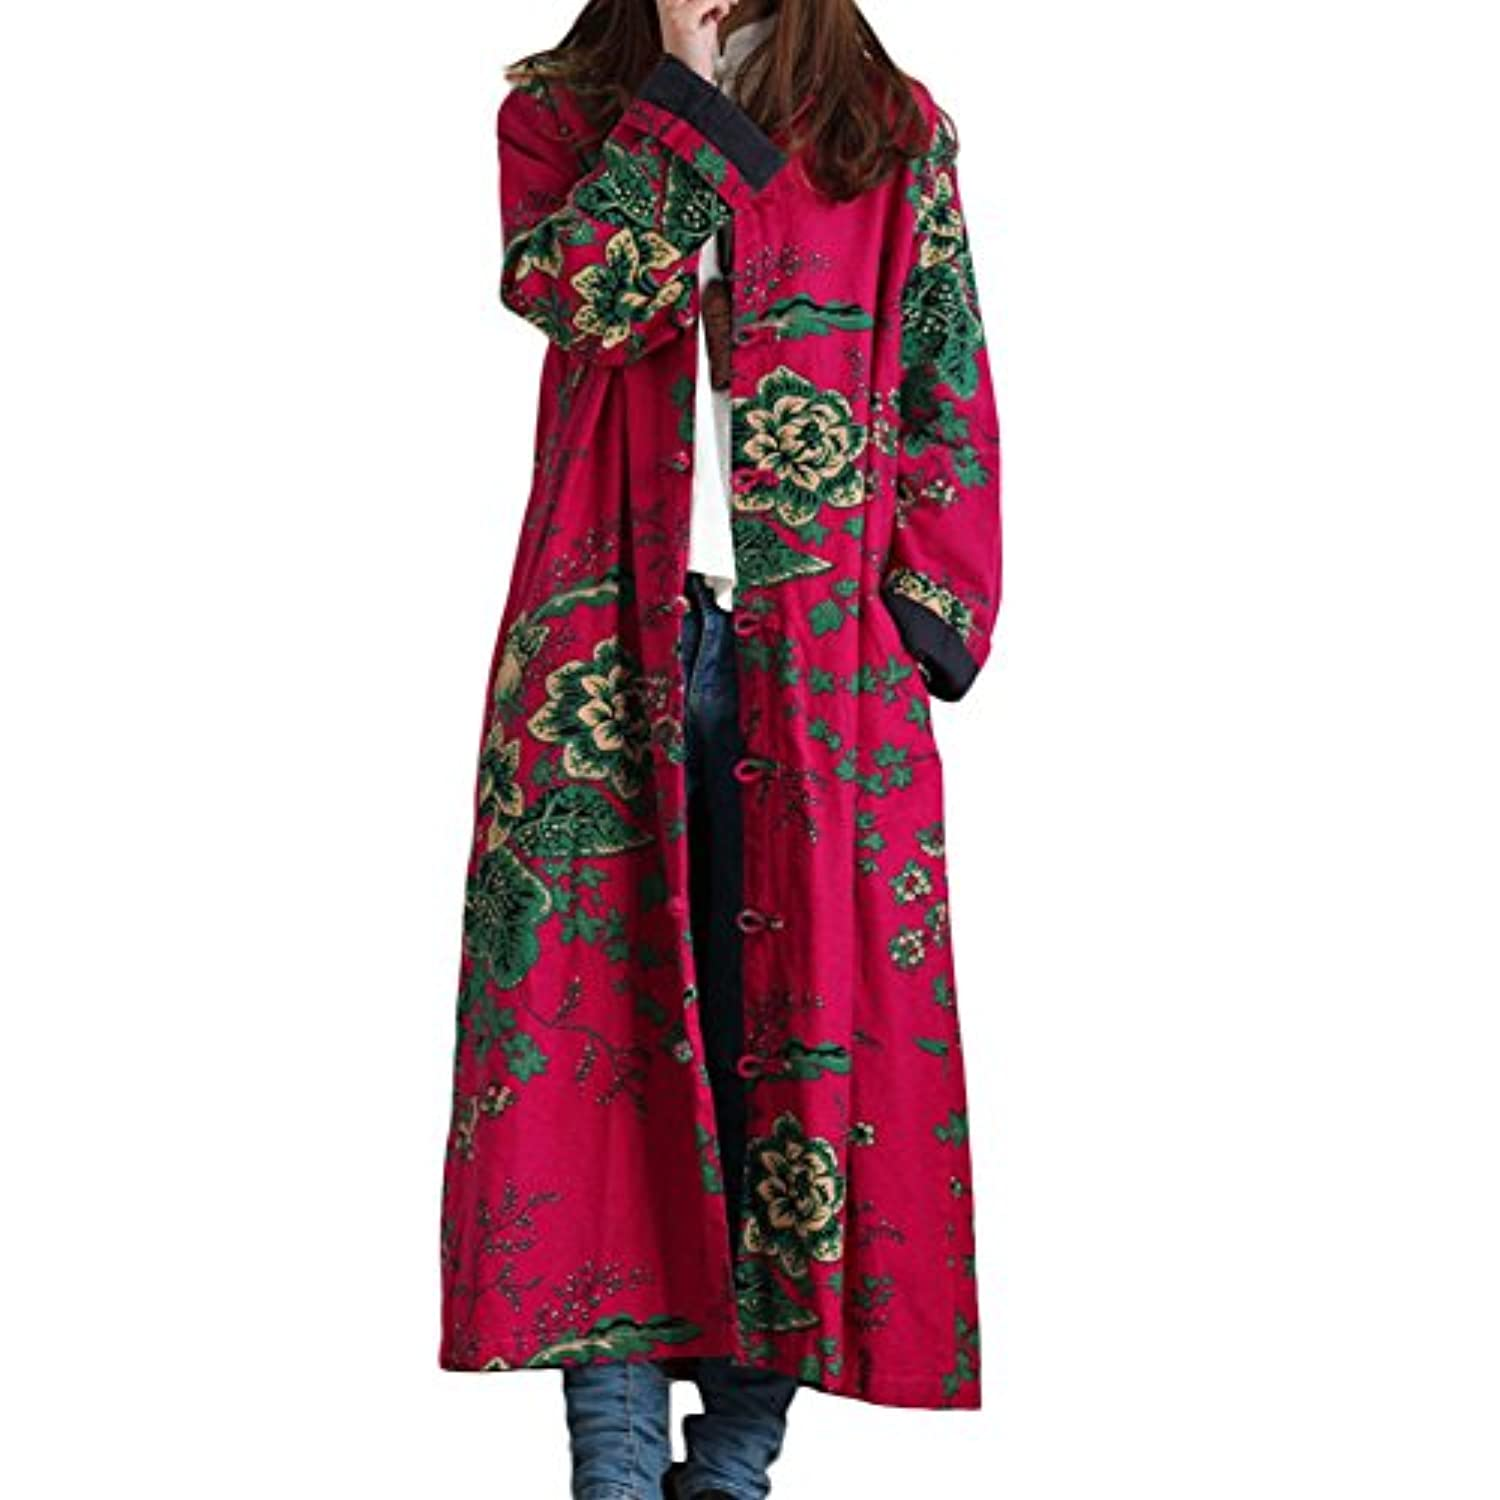 Women's Cotton Linen Trench Coat Floral Print Long Jacket with Pockets